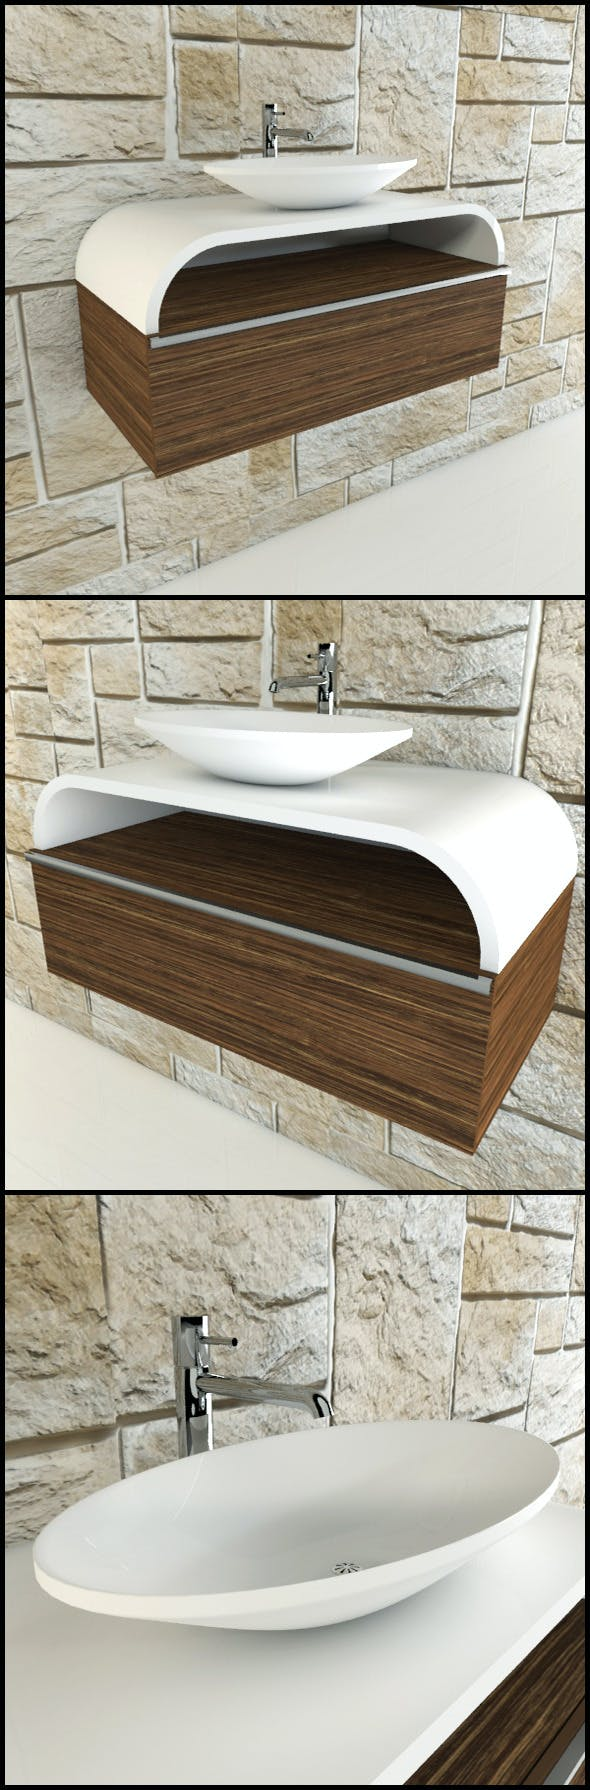 Toilet basin with chrome tap and wood panels - 3DOcean Item for Sale